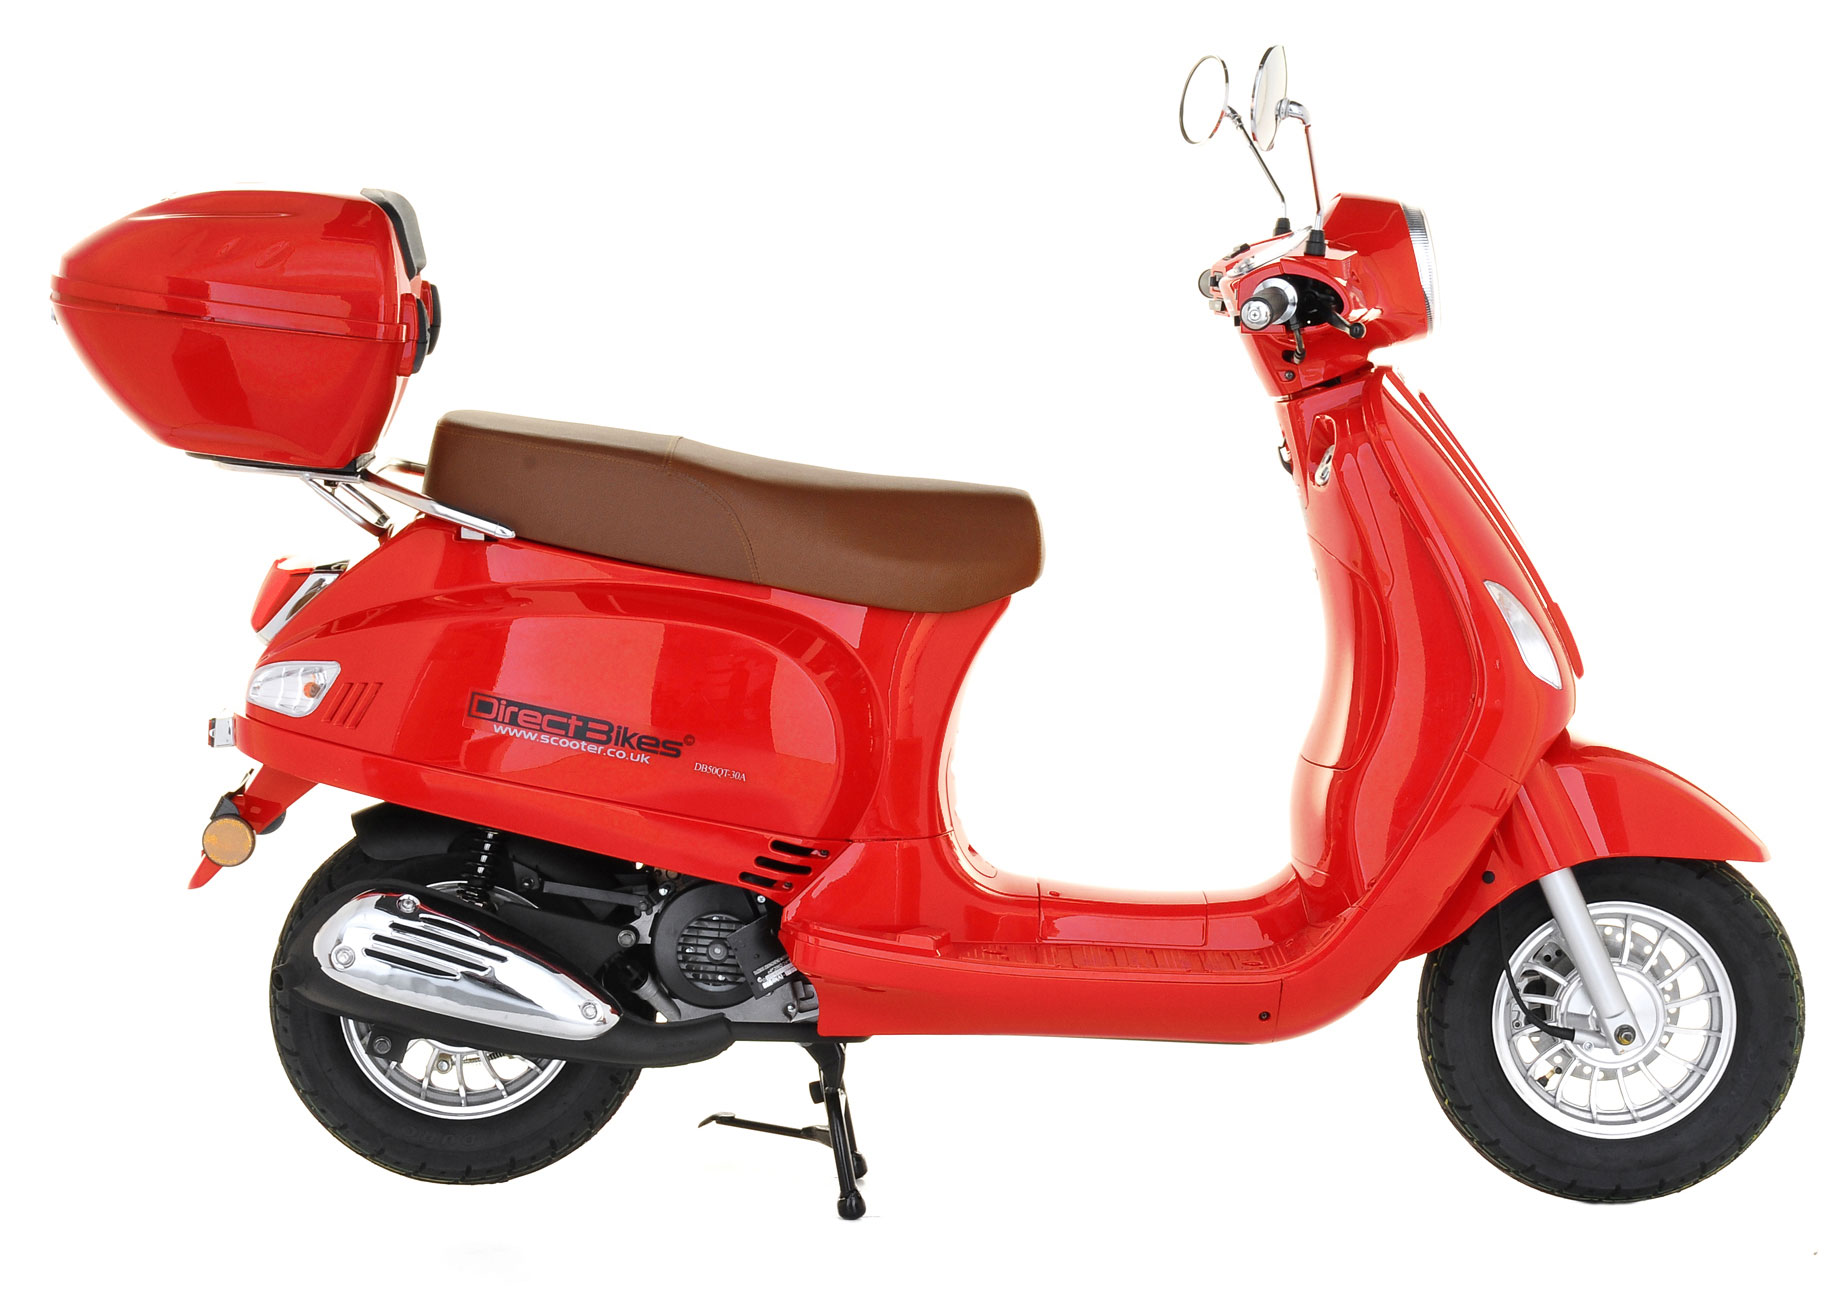 125cc Moped 125 Direct Bikes Mopeds